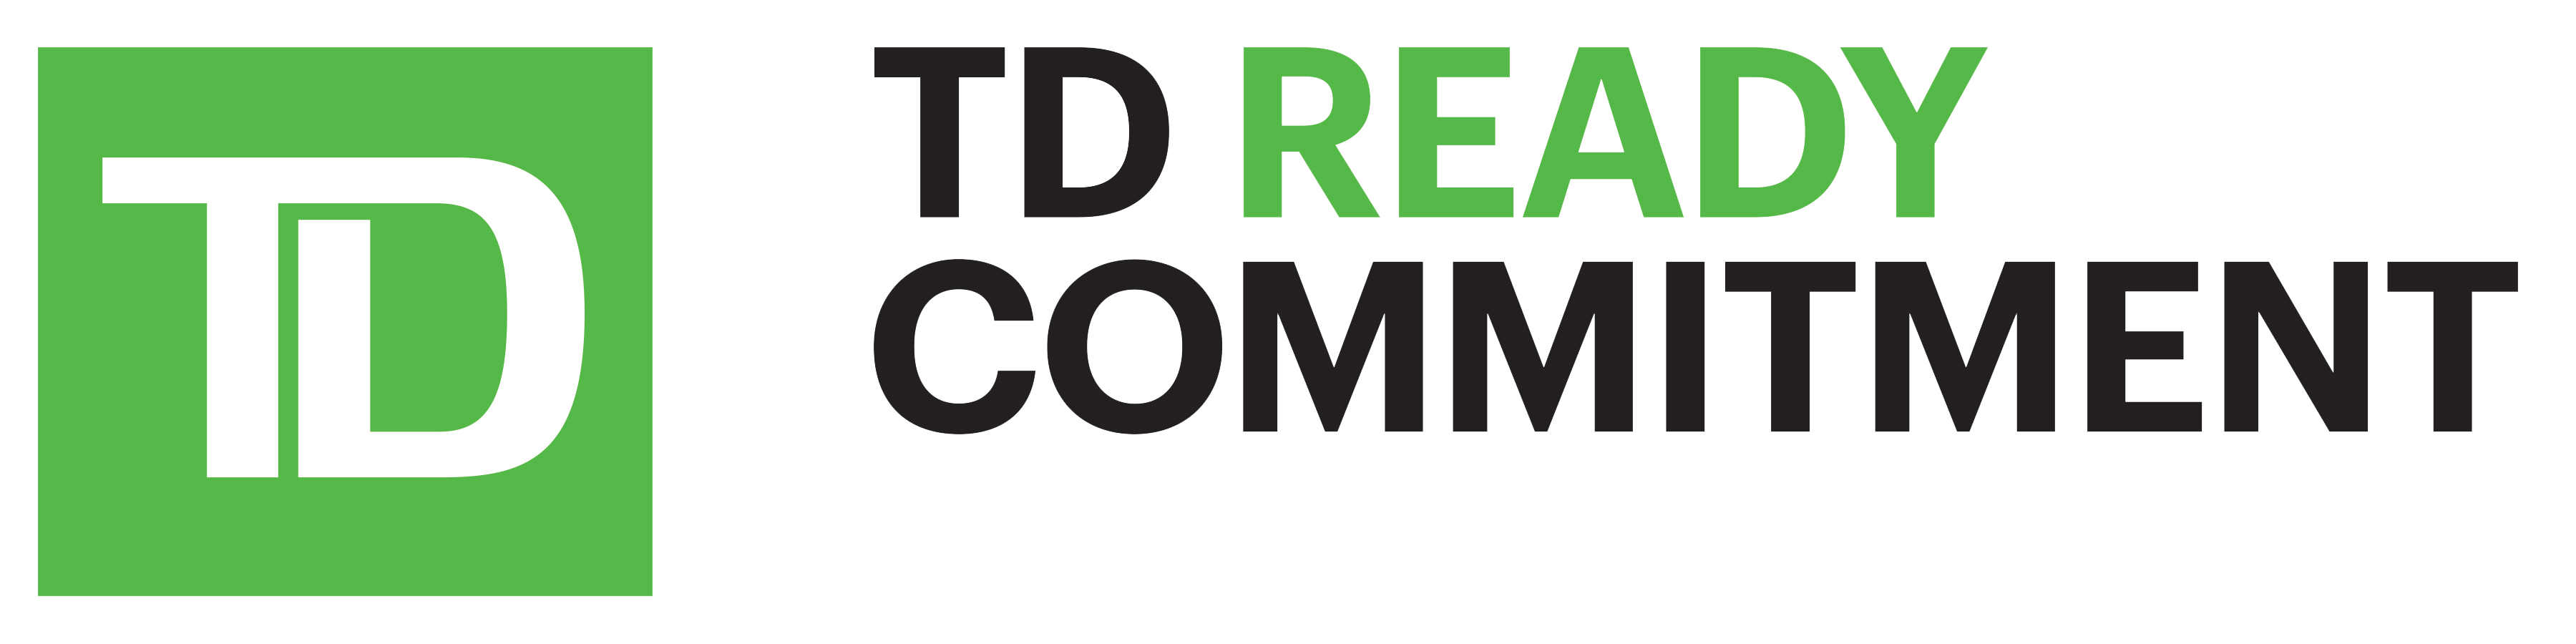 TDReadyCommitment_LockupEN